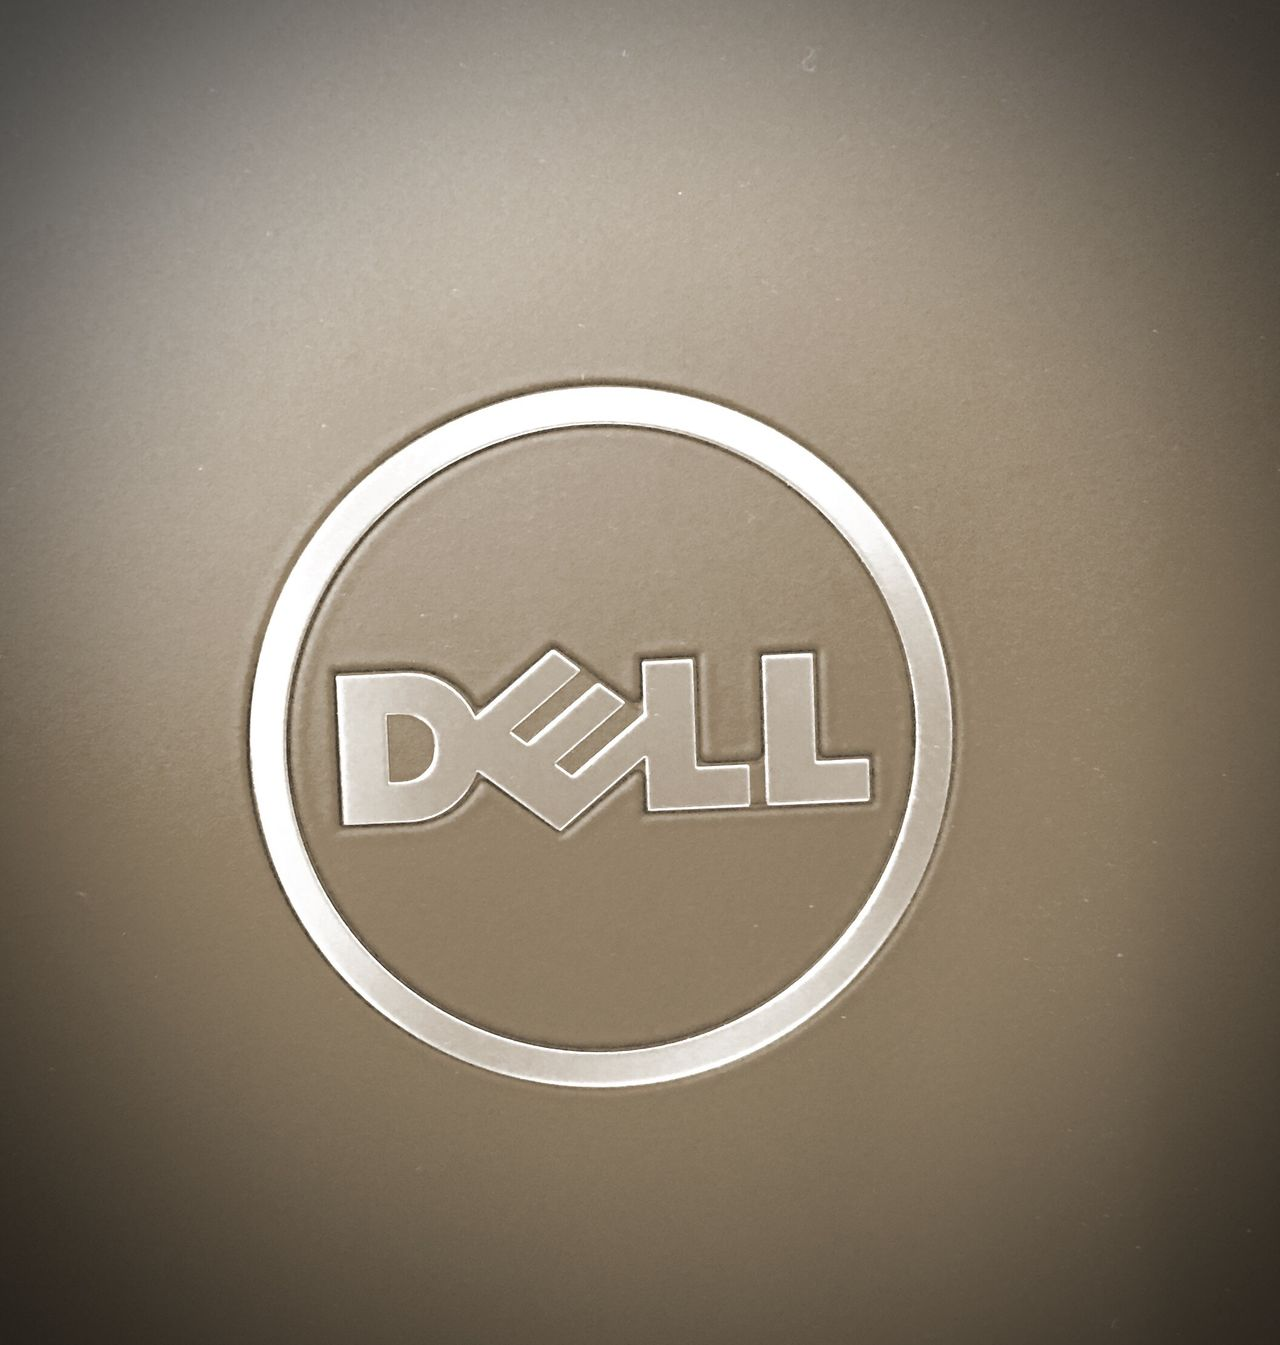 Dell Dell Laptop Tablet Tablet Device Brand Computer Laptop Kuwait School